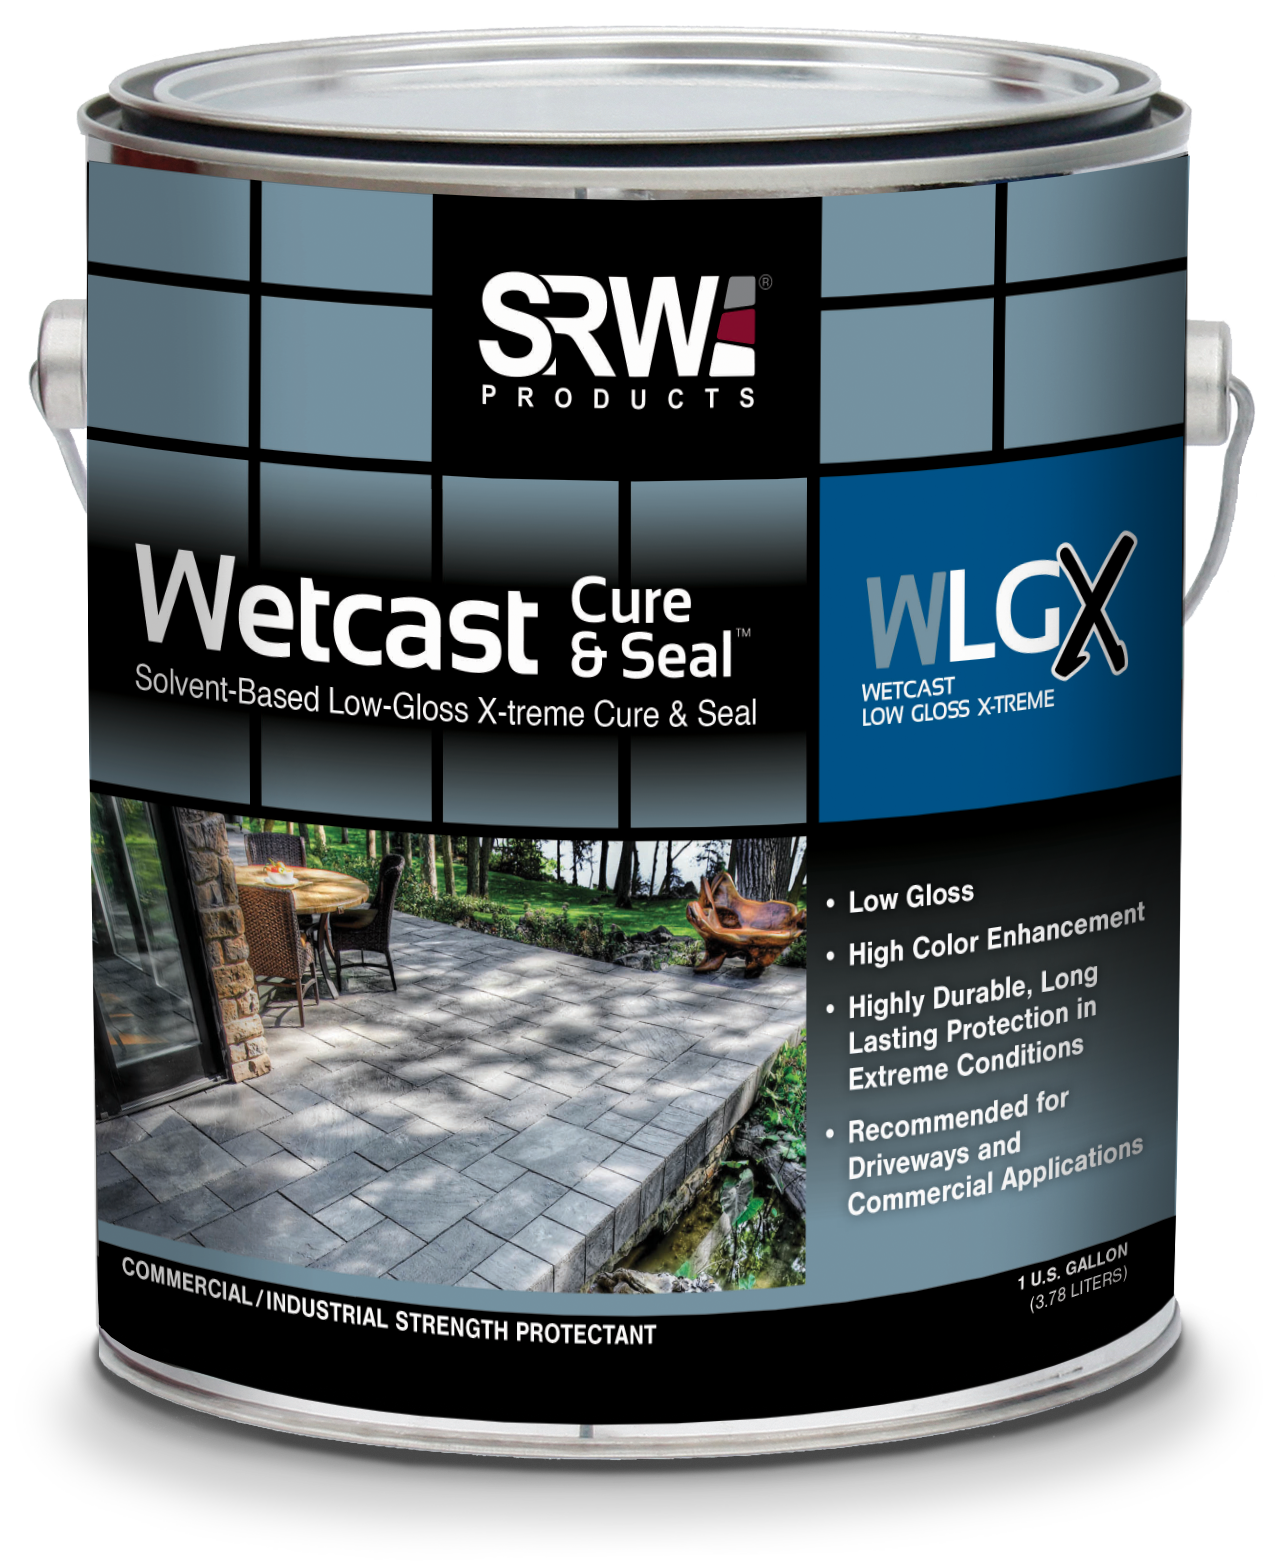 W-LGX_1Gallon_WetcastSeal_2019_RGB_SHADOW